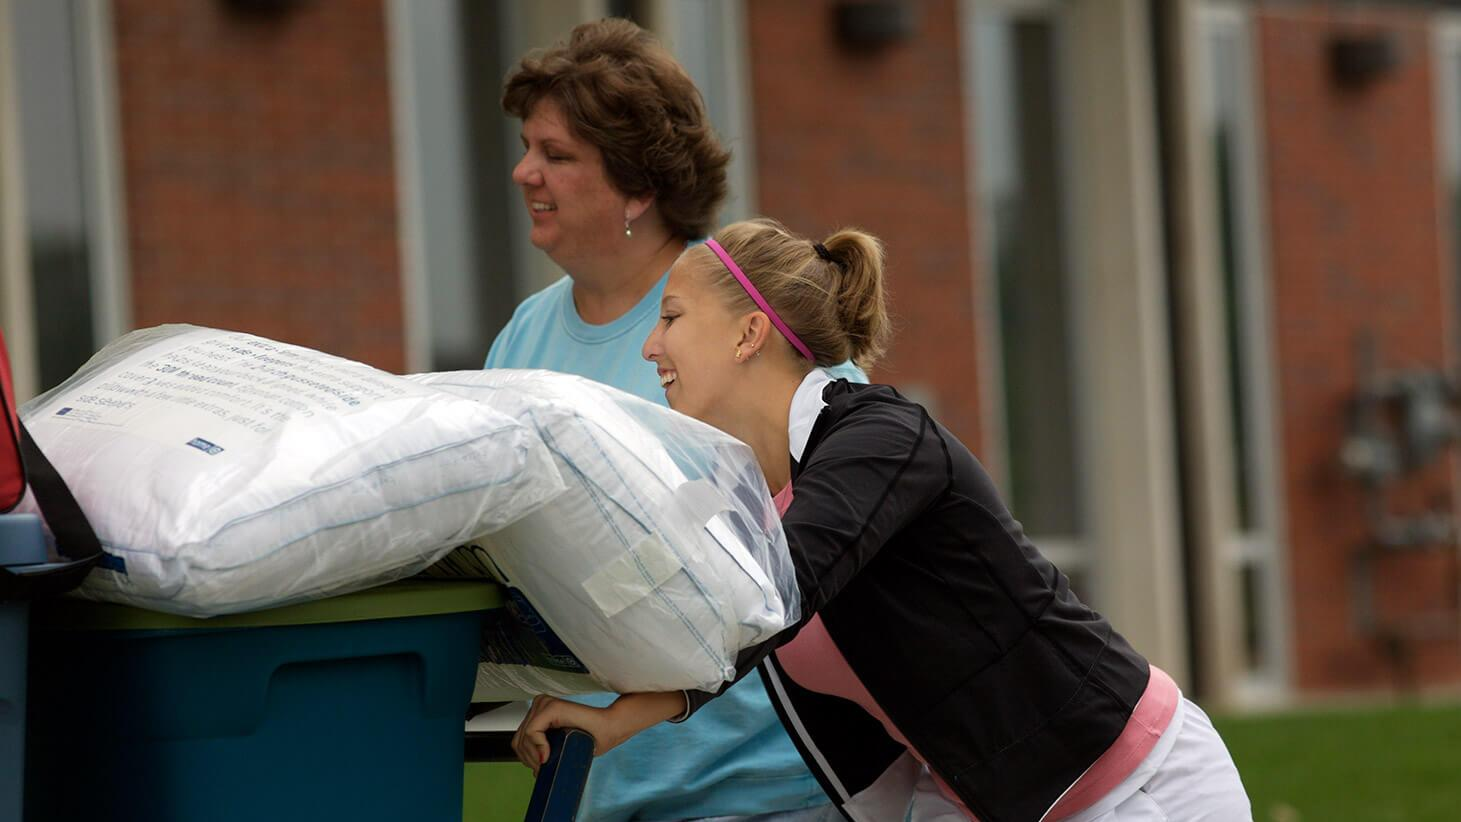 Student pushing cart during move in